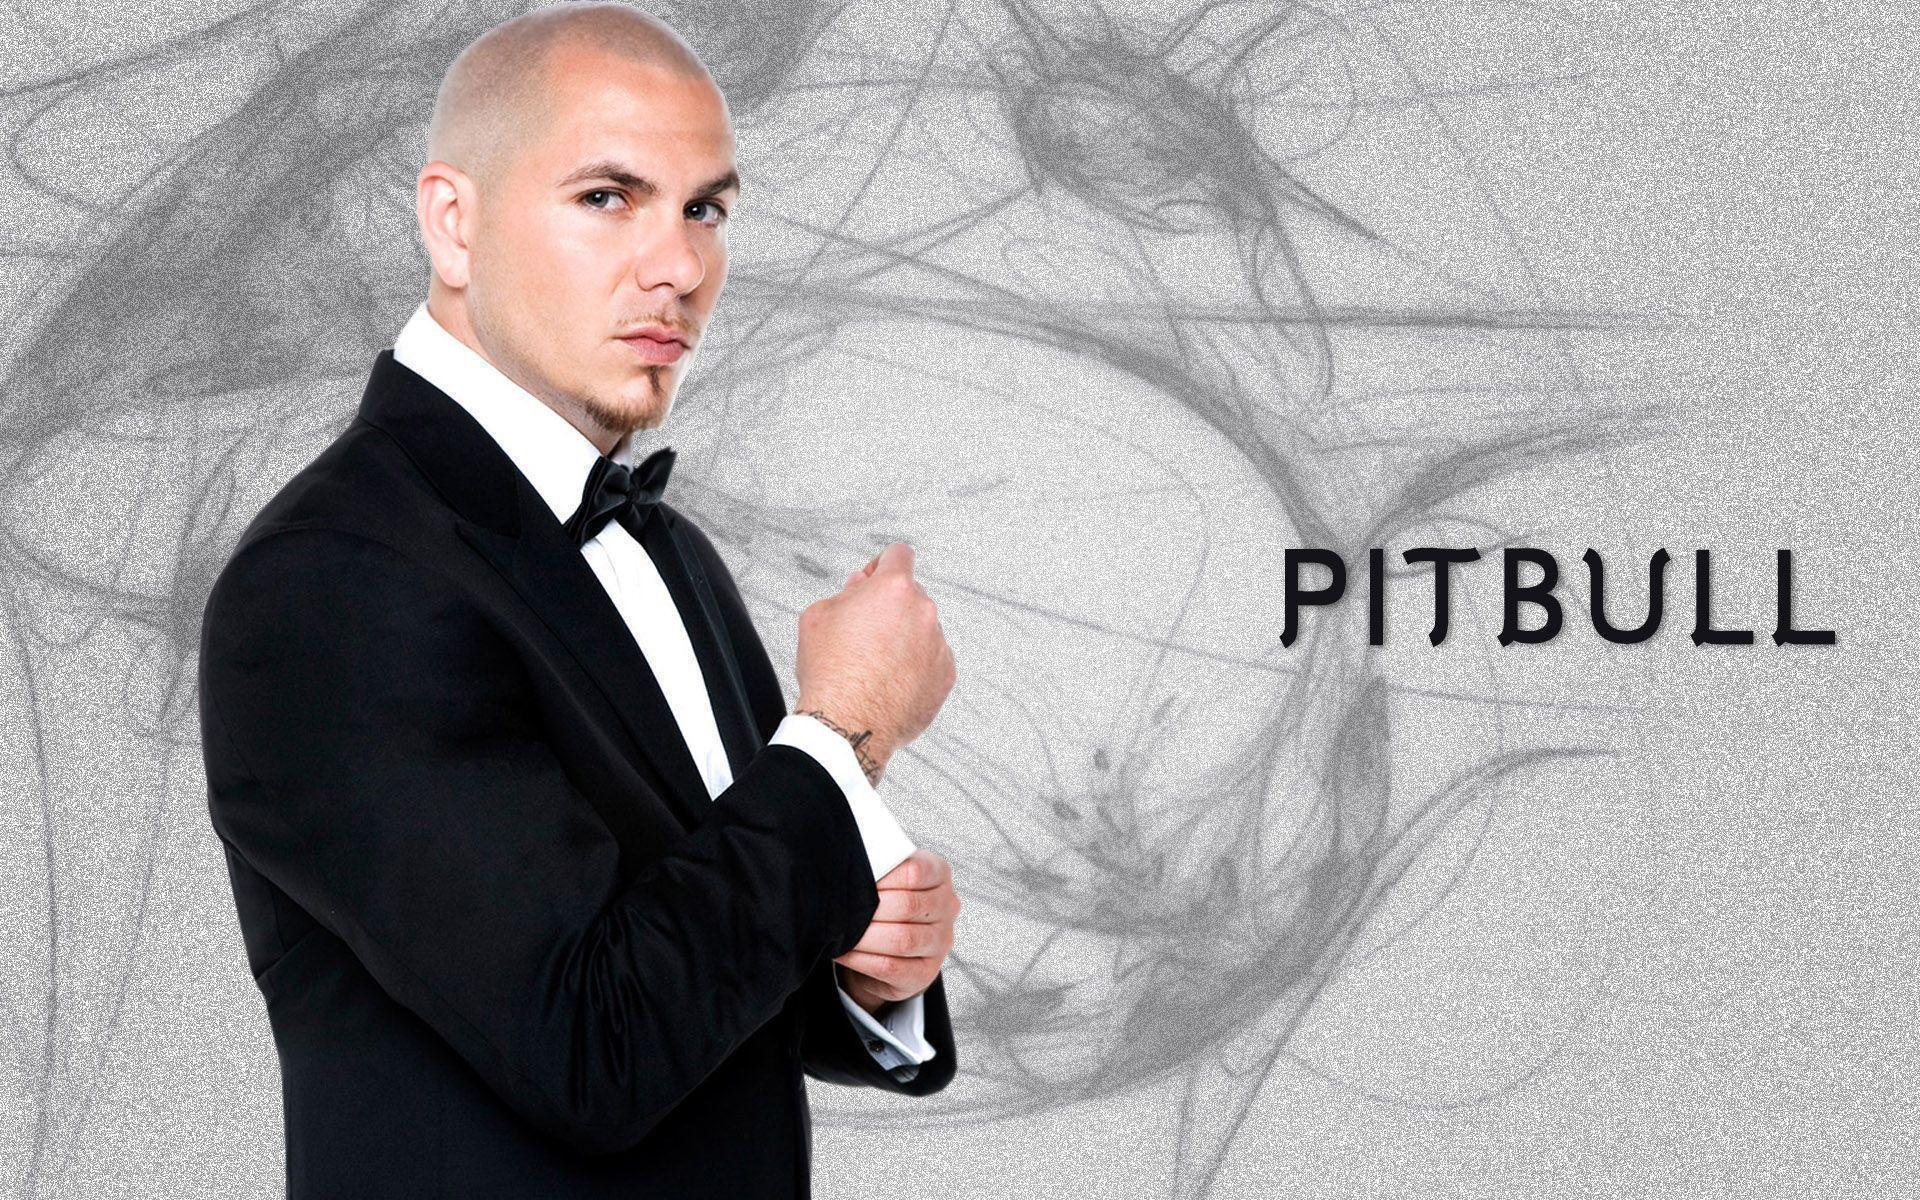 Pitbull Rapper Wallpaper